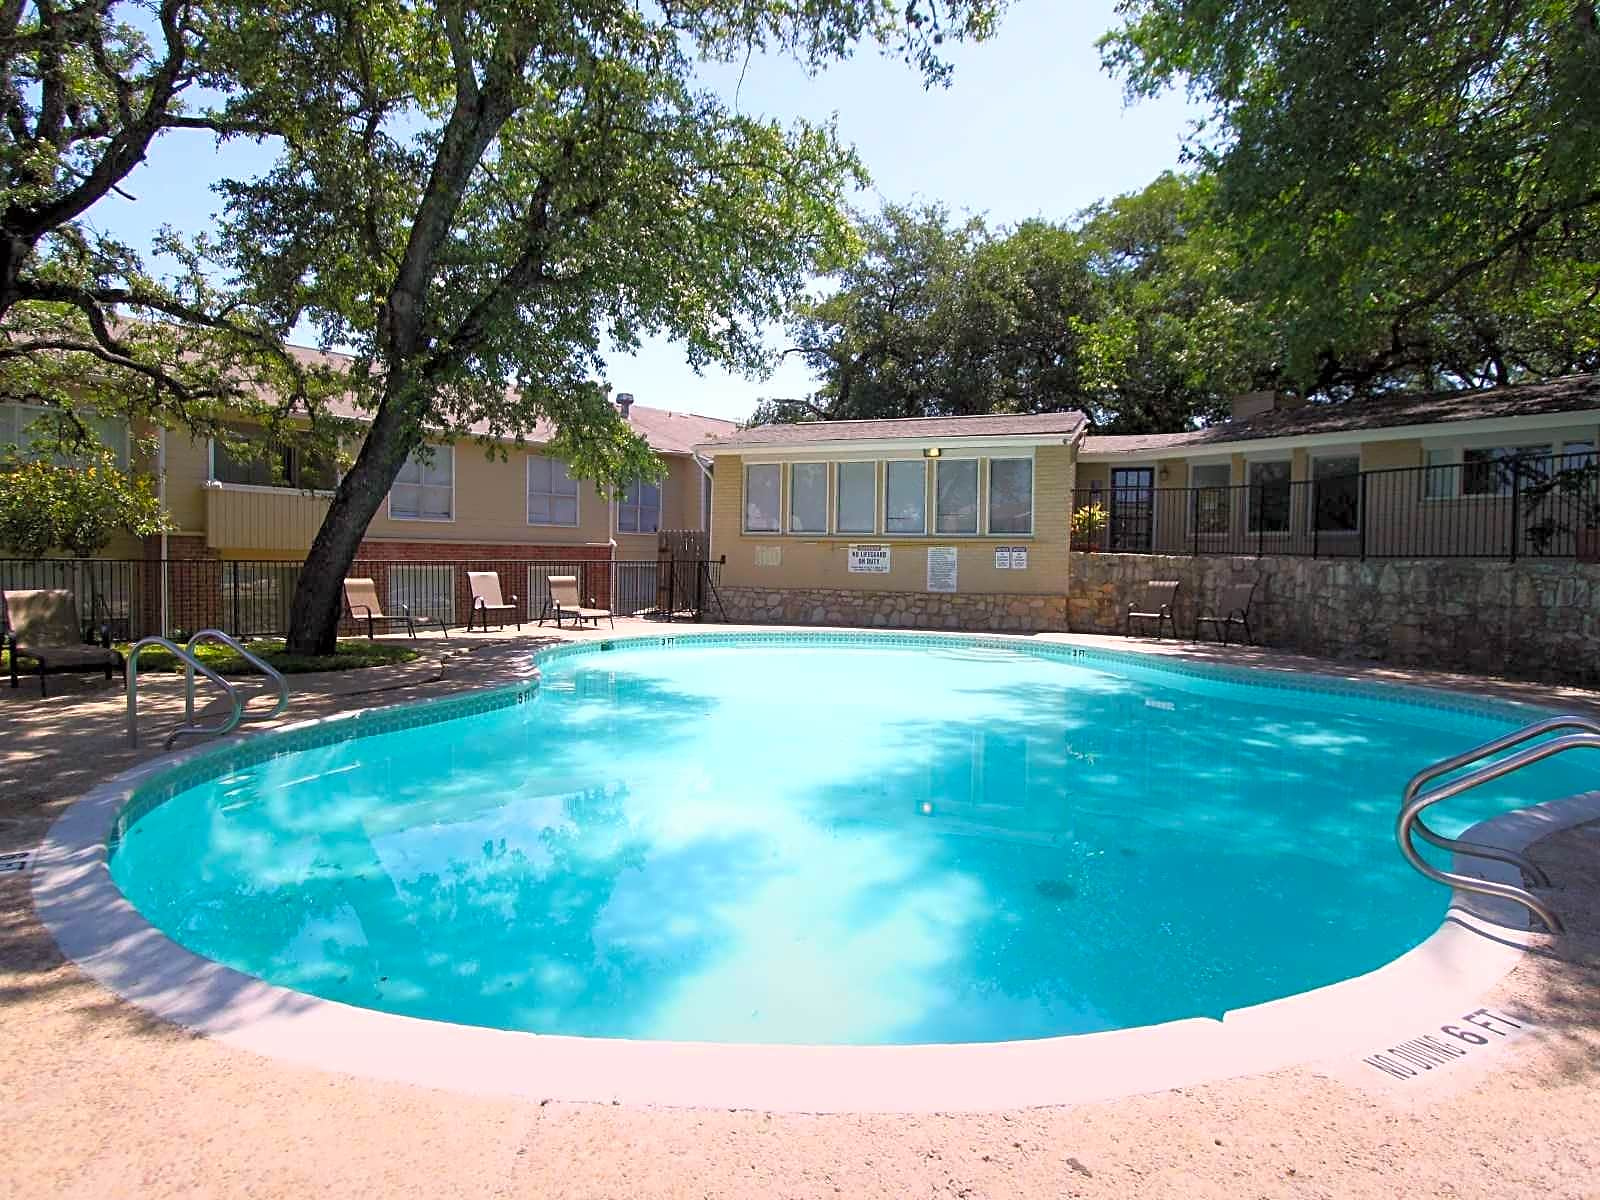 Photo: San Antonio Apartment for Rent - $675.00 / month; 2 Bd & 2 Ba